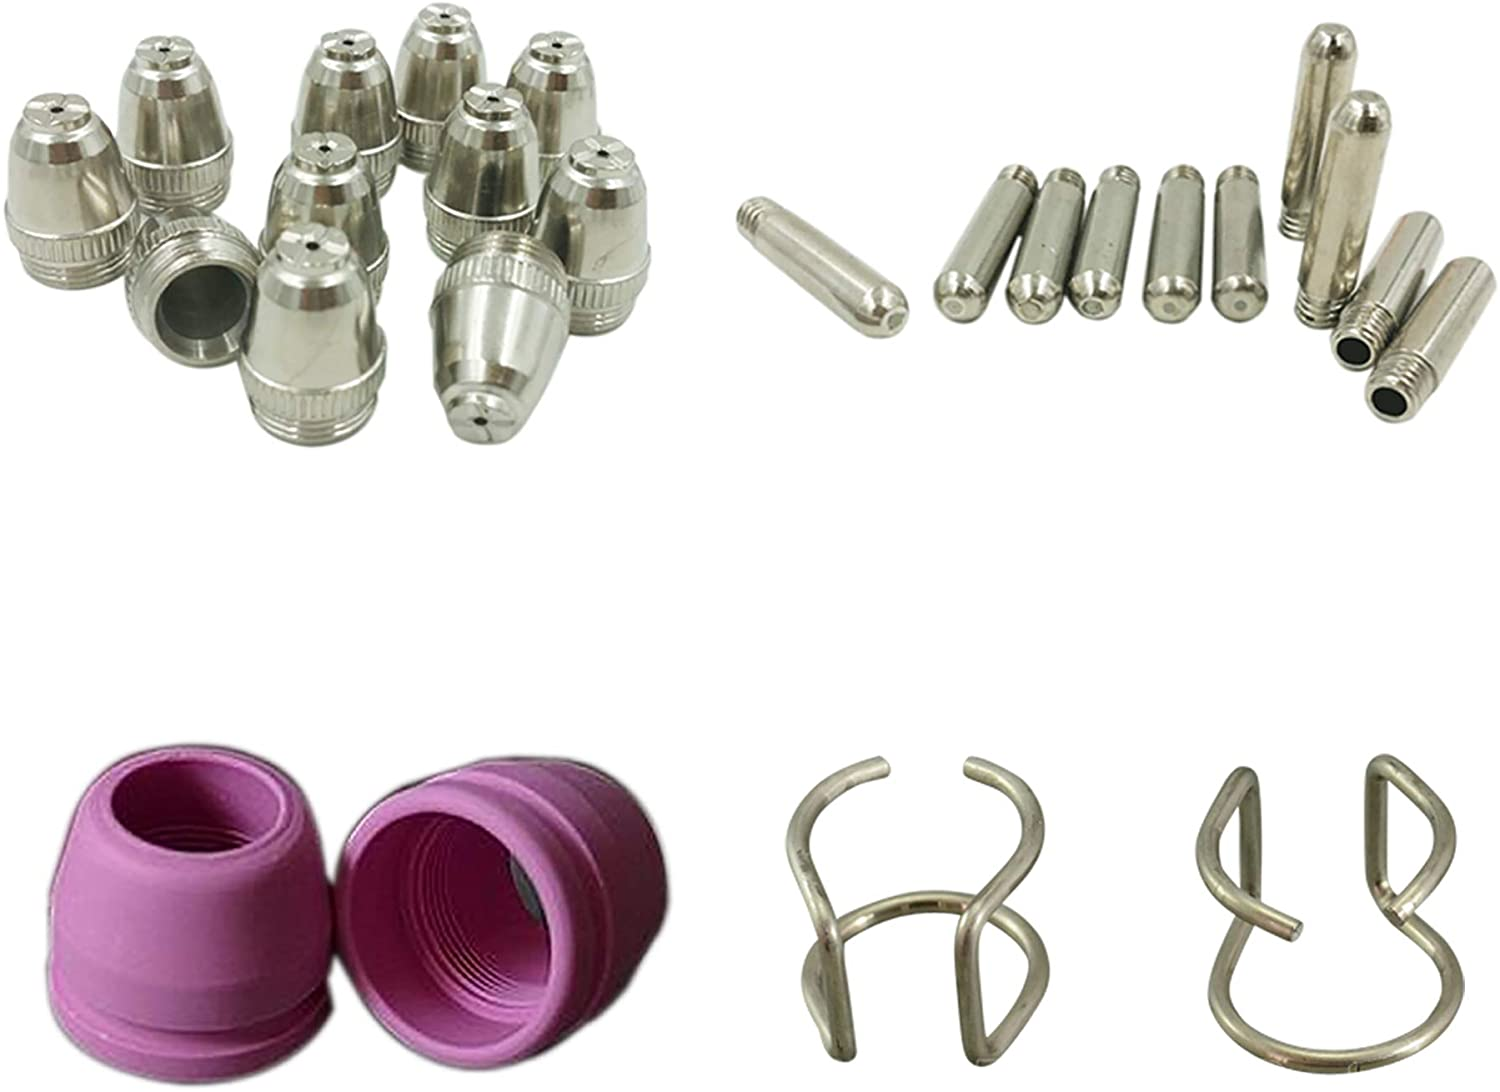 KICKINGHORSE P40 Plasma Cutter Consumable Kit for SG55 AG60 torch